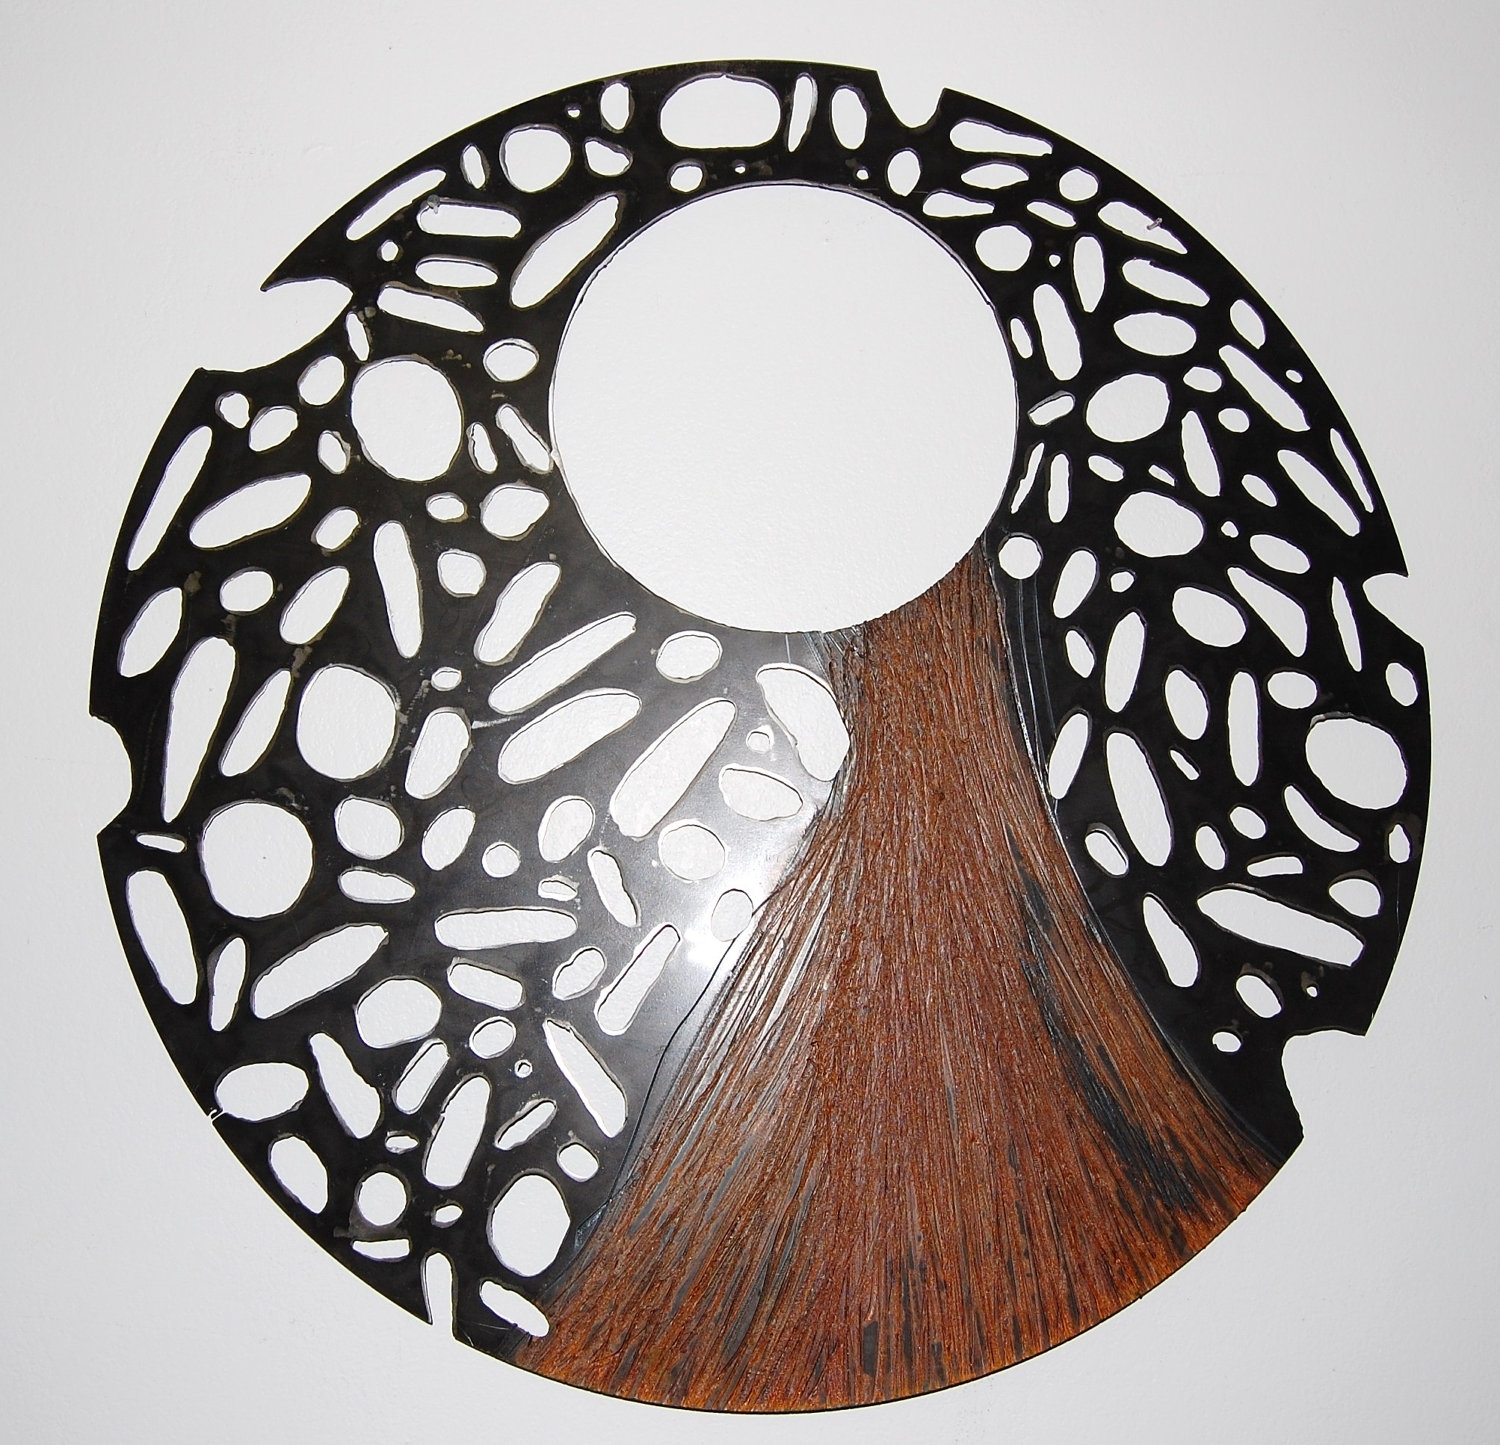 Large Steel Sculpture,recycled Metal Wall Art, Round Perforated Inside Current Abstract Outdoor Wall Art (View 5 of 20)